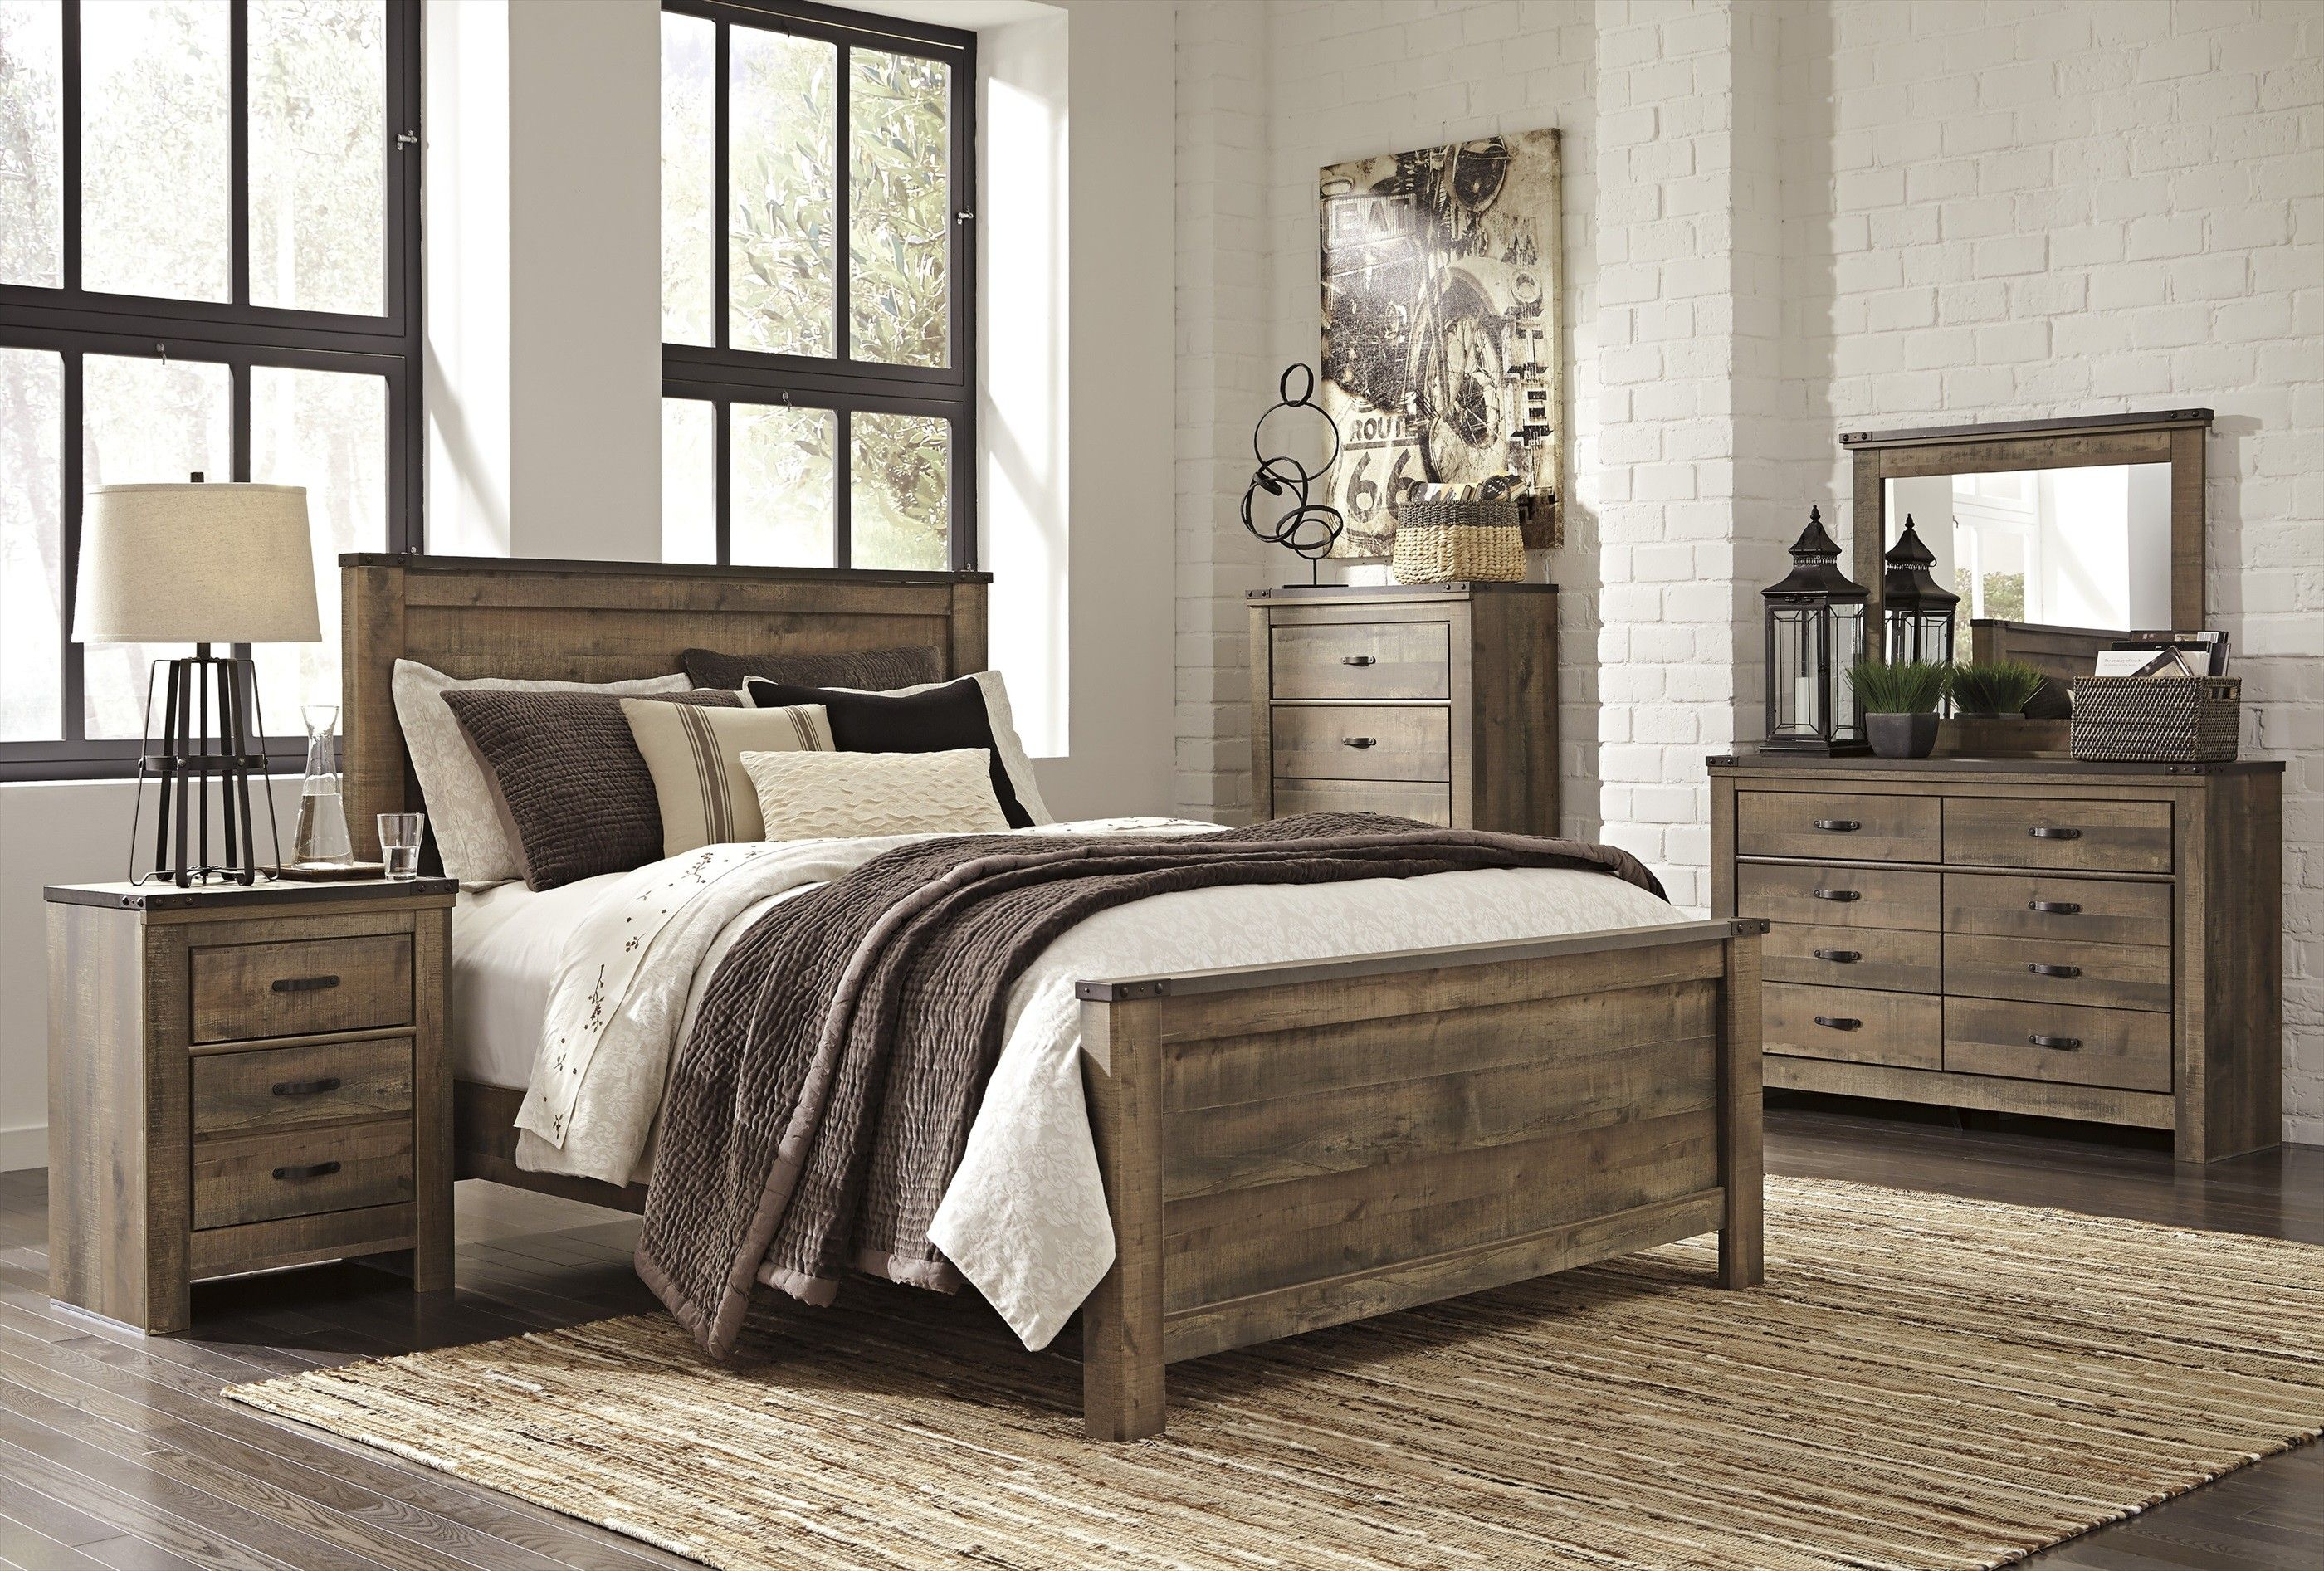 Rustic plank bedroom queen bedroom sets rustic king bedroom set farmhouse bedroom set